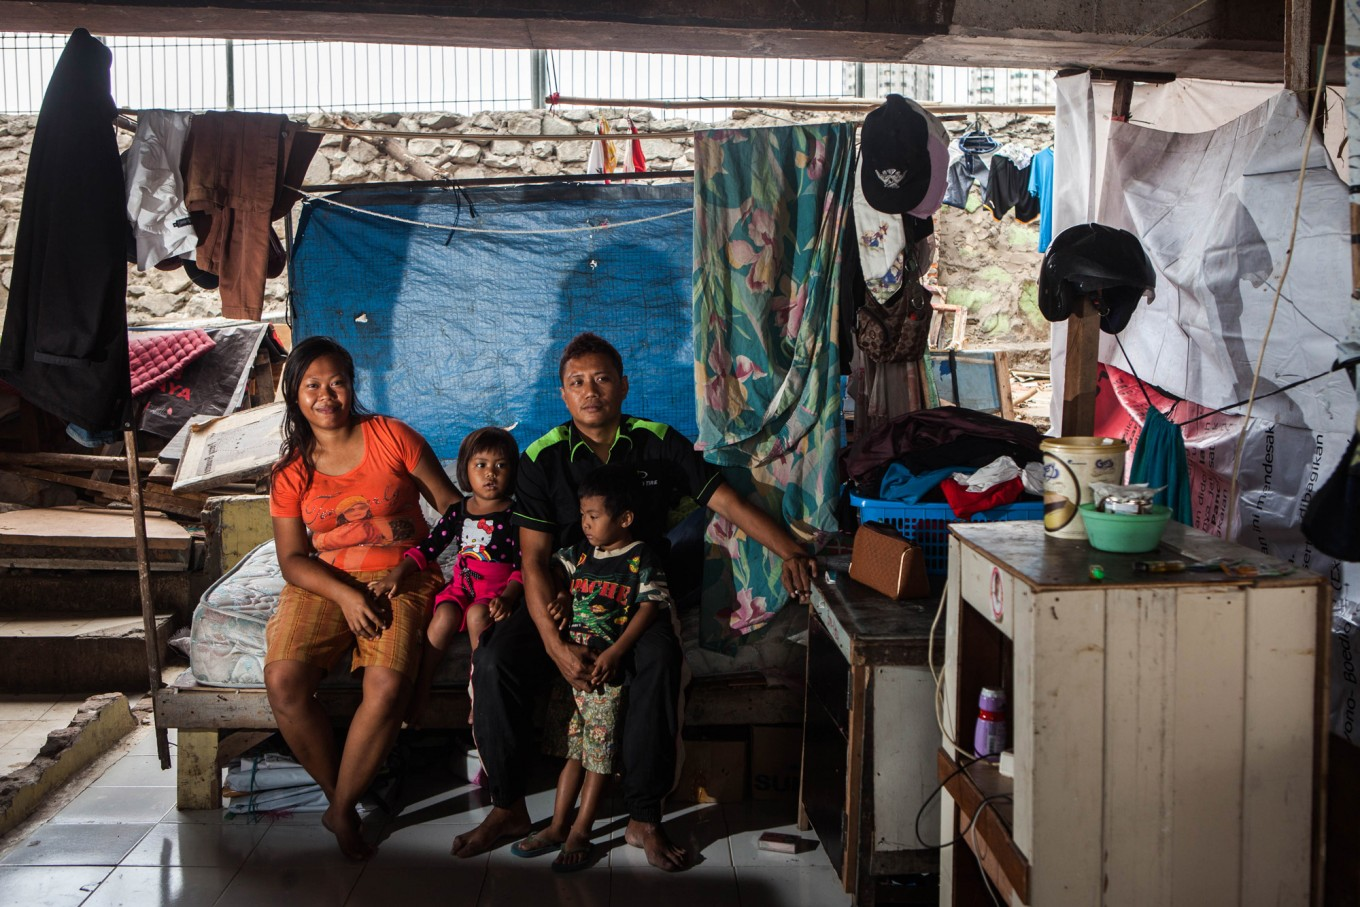 Couple Jony, 29, and Fitri, 24, and their children, Bima, 5, and Kaila, 3, in their home in Pejagalan. They have been living under the toll road since 2008. He worked as a parking attendant before but now he watches and guards trucks that park in the area in exchange for some money. JP/Seto Wardhana